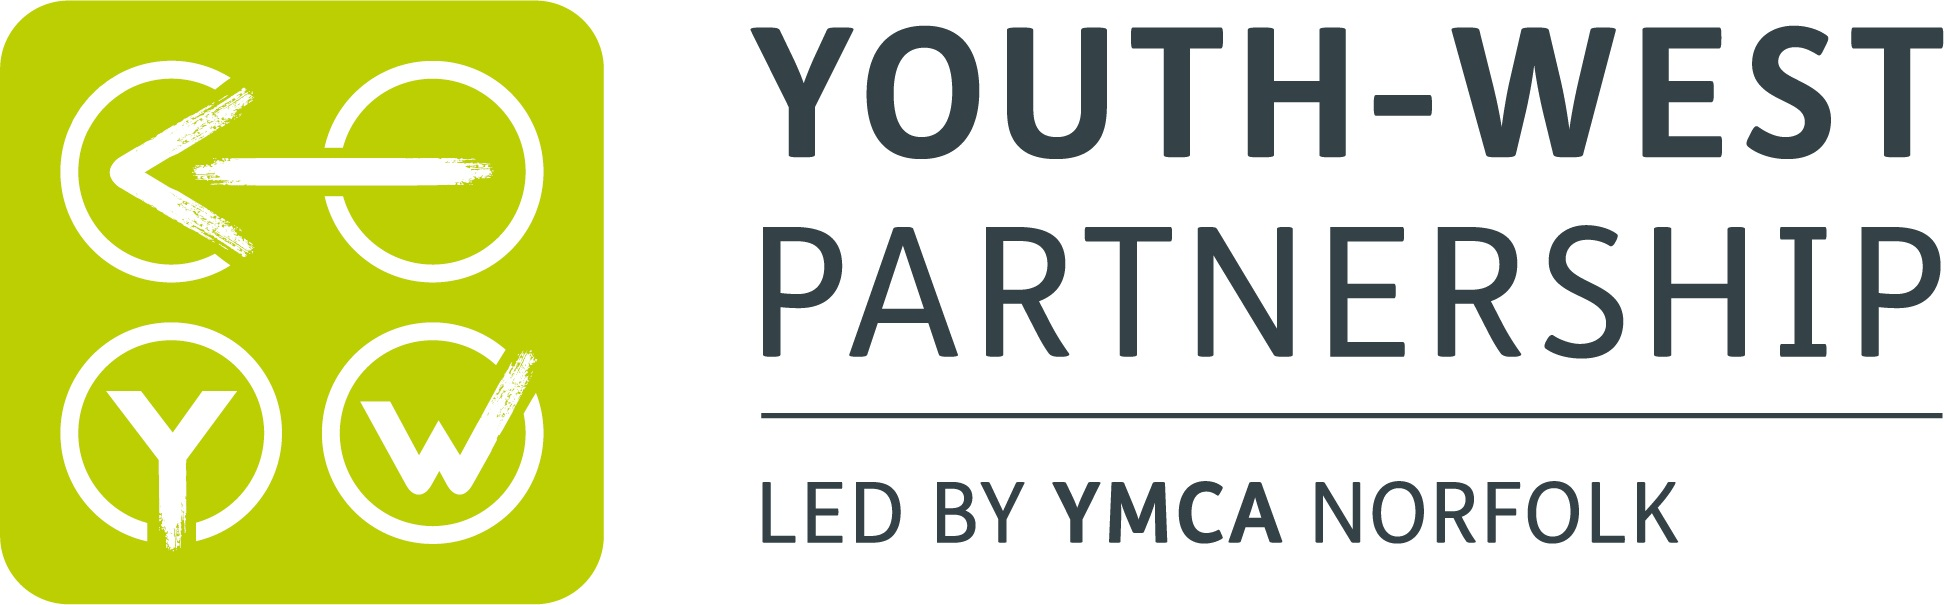 Youth-West Partnership